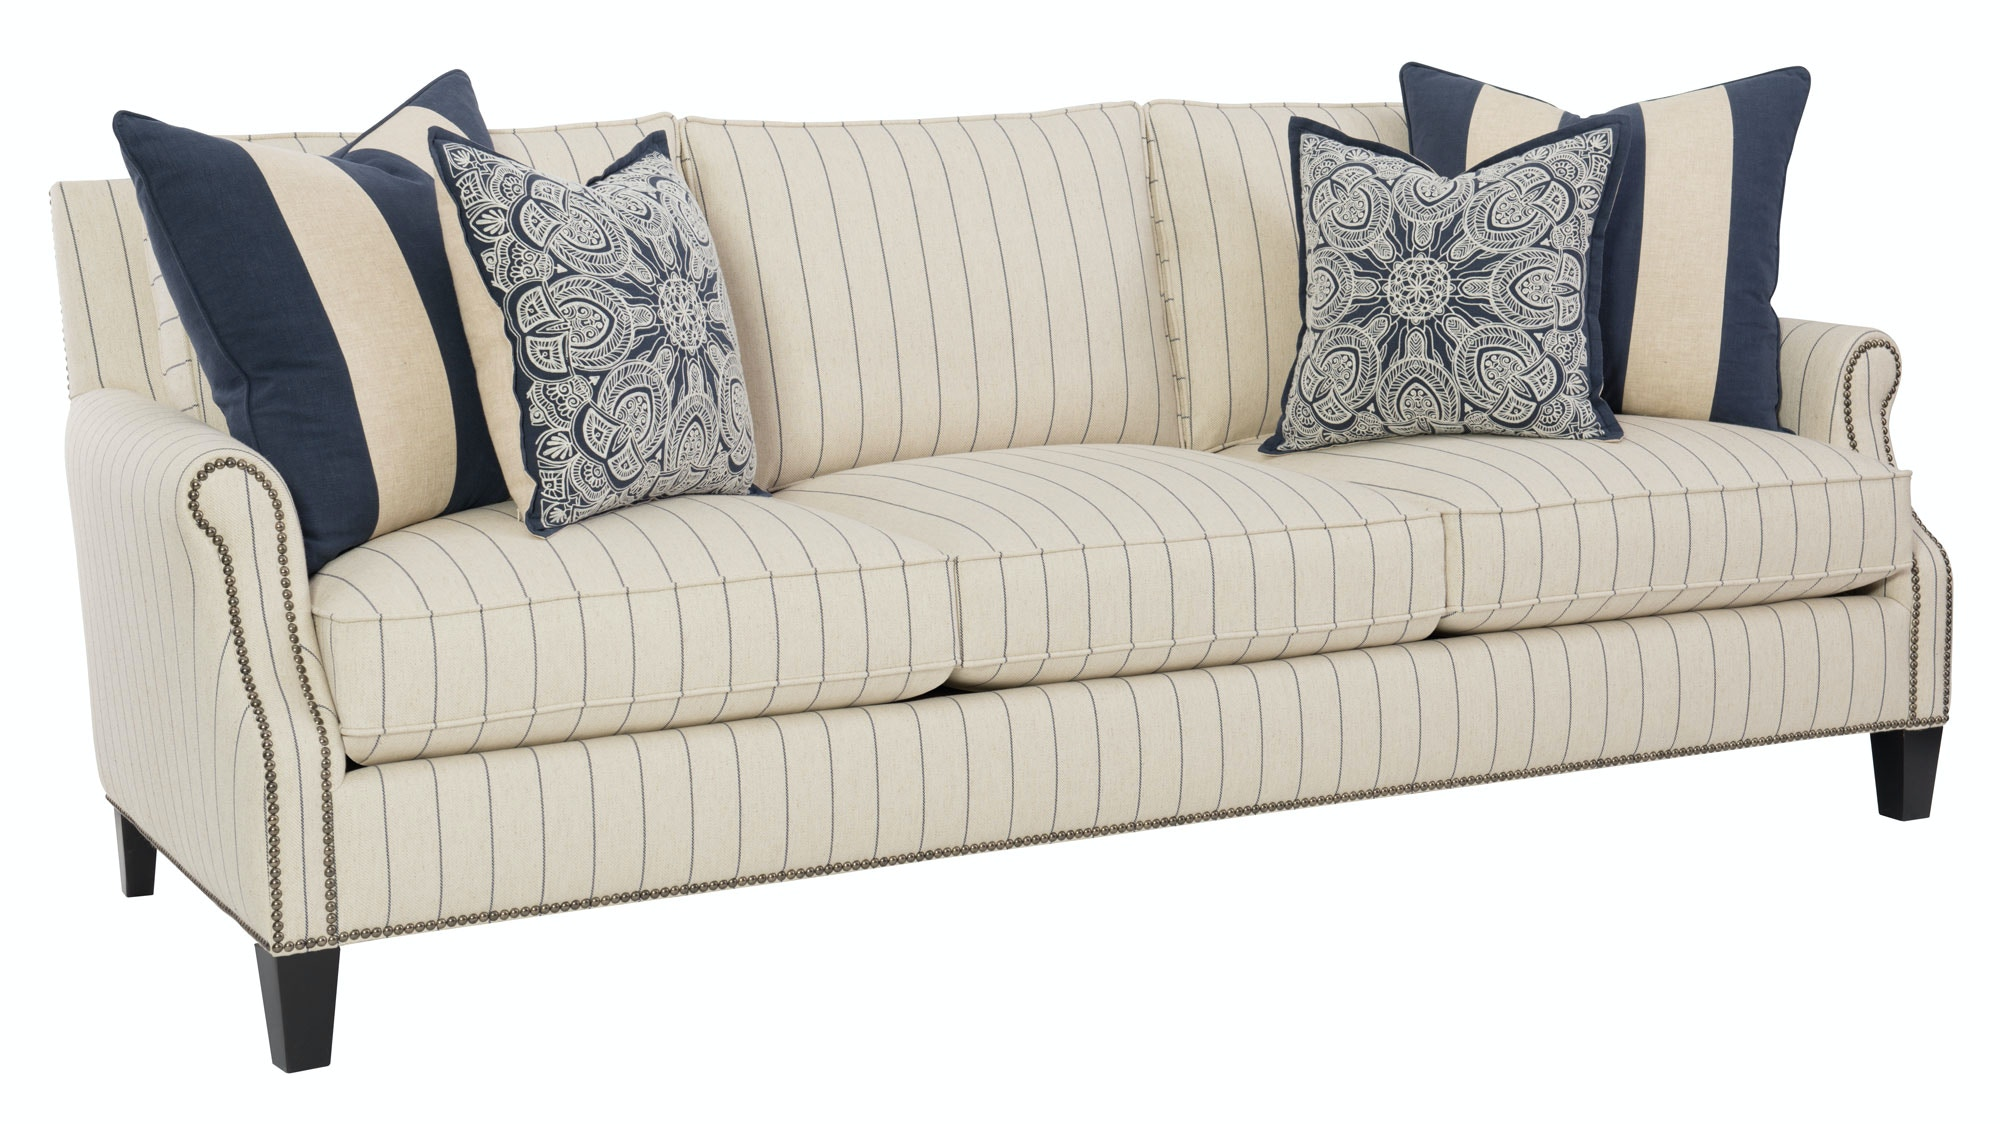 Bernhardt brooke sofa living room bernhardt thesofa Bernhardt living room furniture